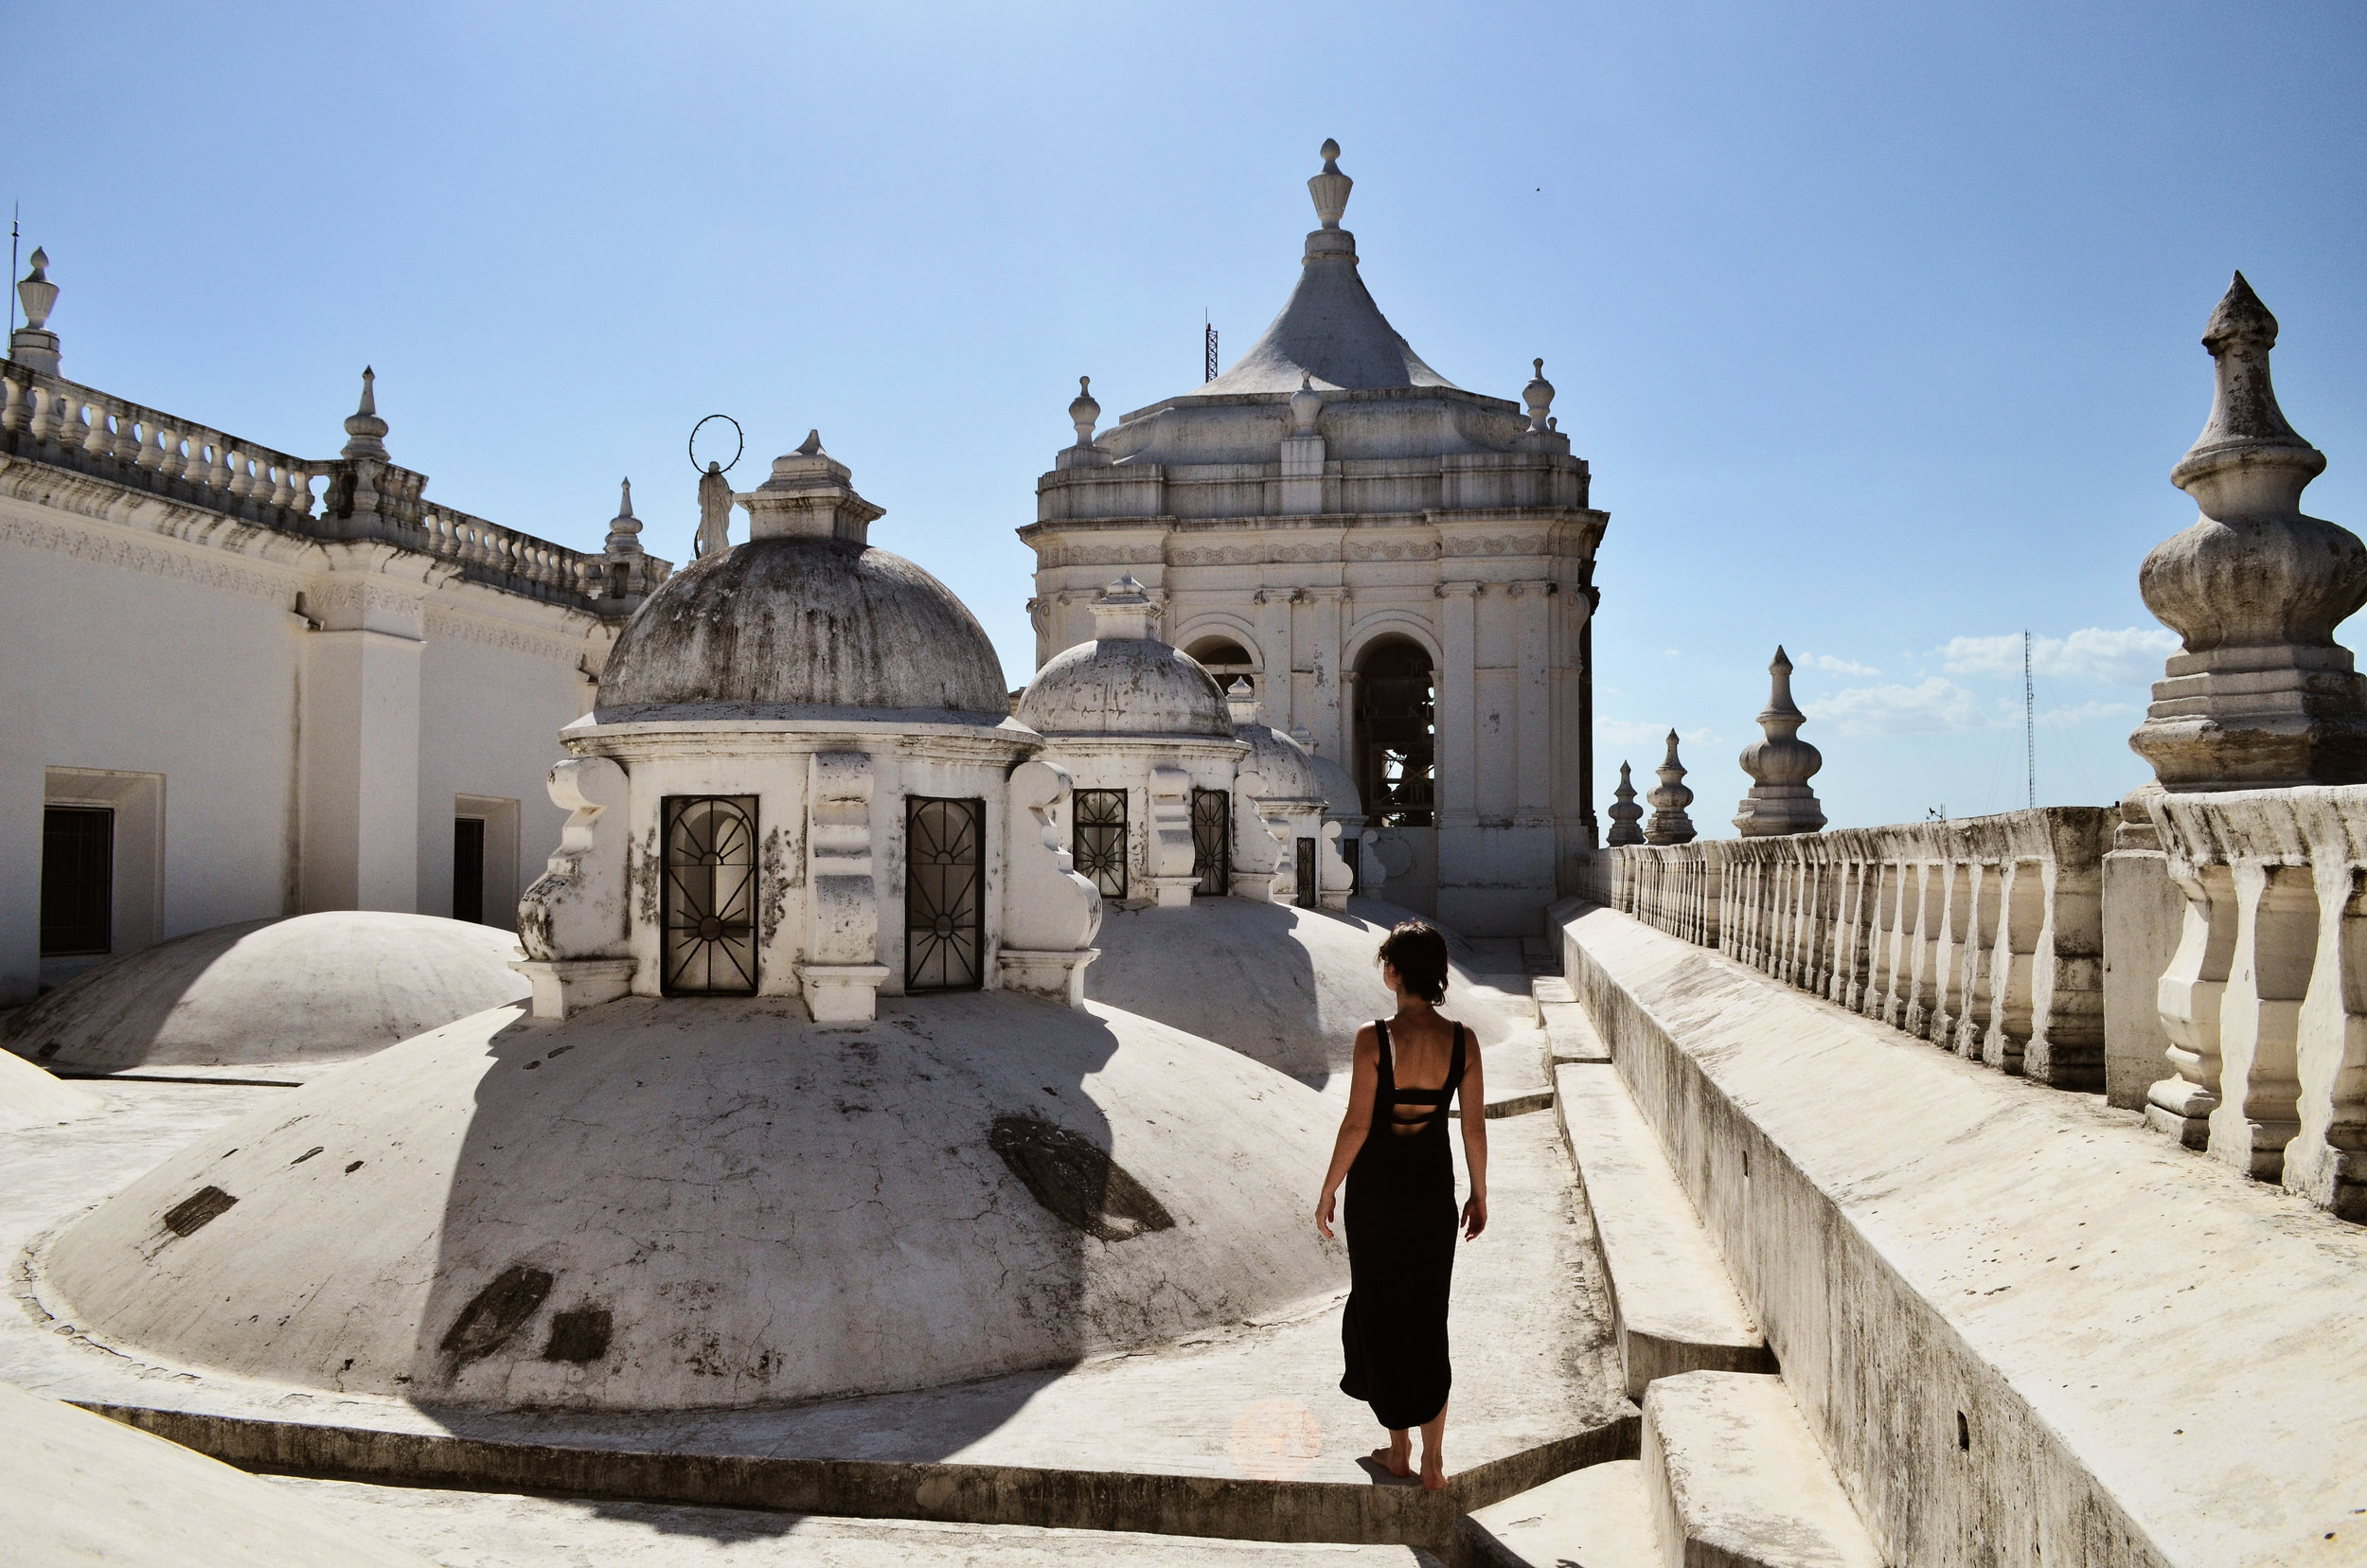 Walking barefoot on the rooftop of the Cathedral in León